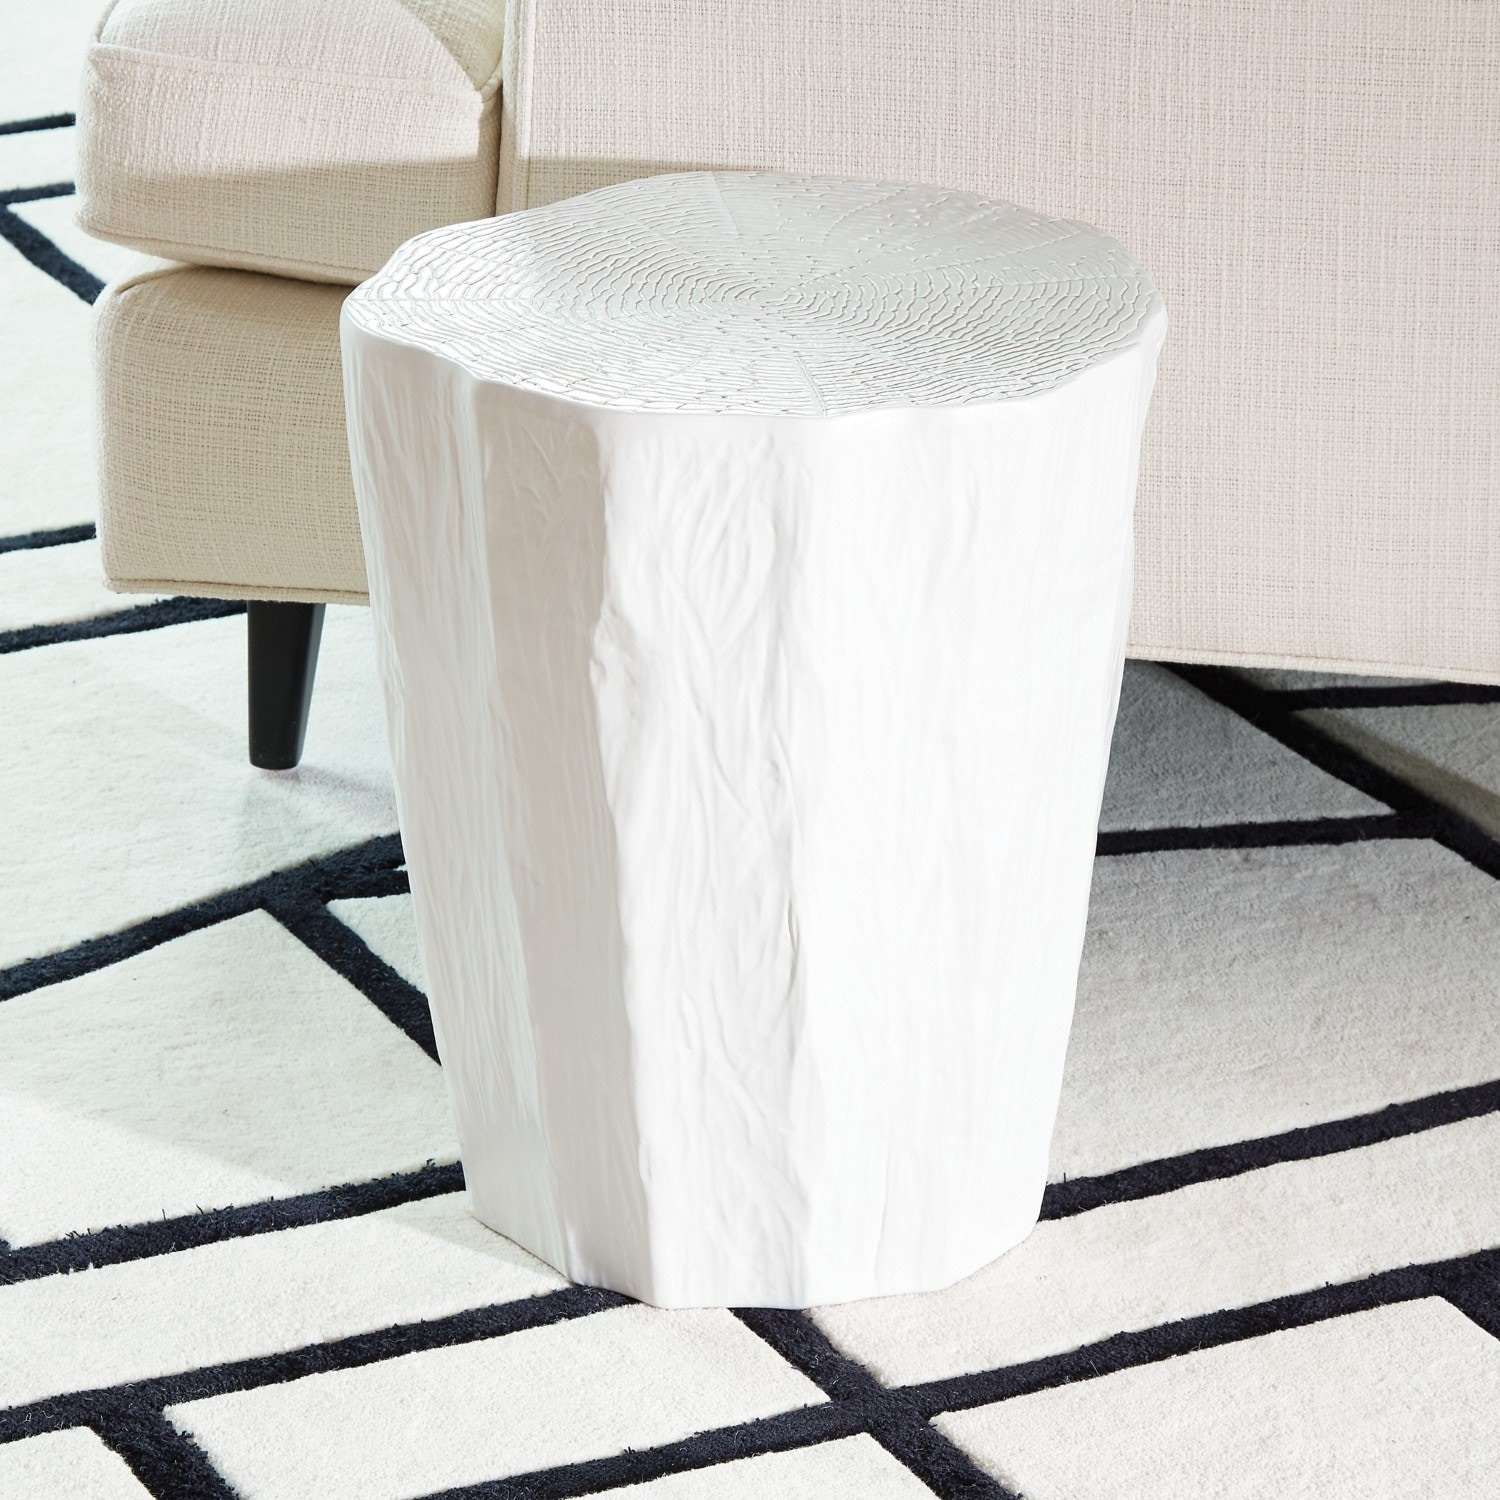 living room stools - weinberger's furniture and mattress showcase